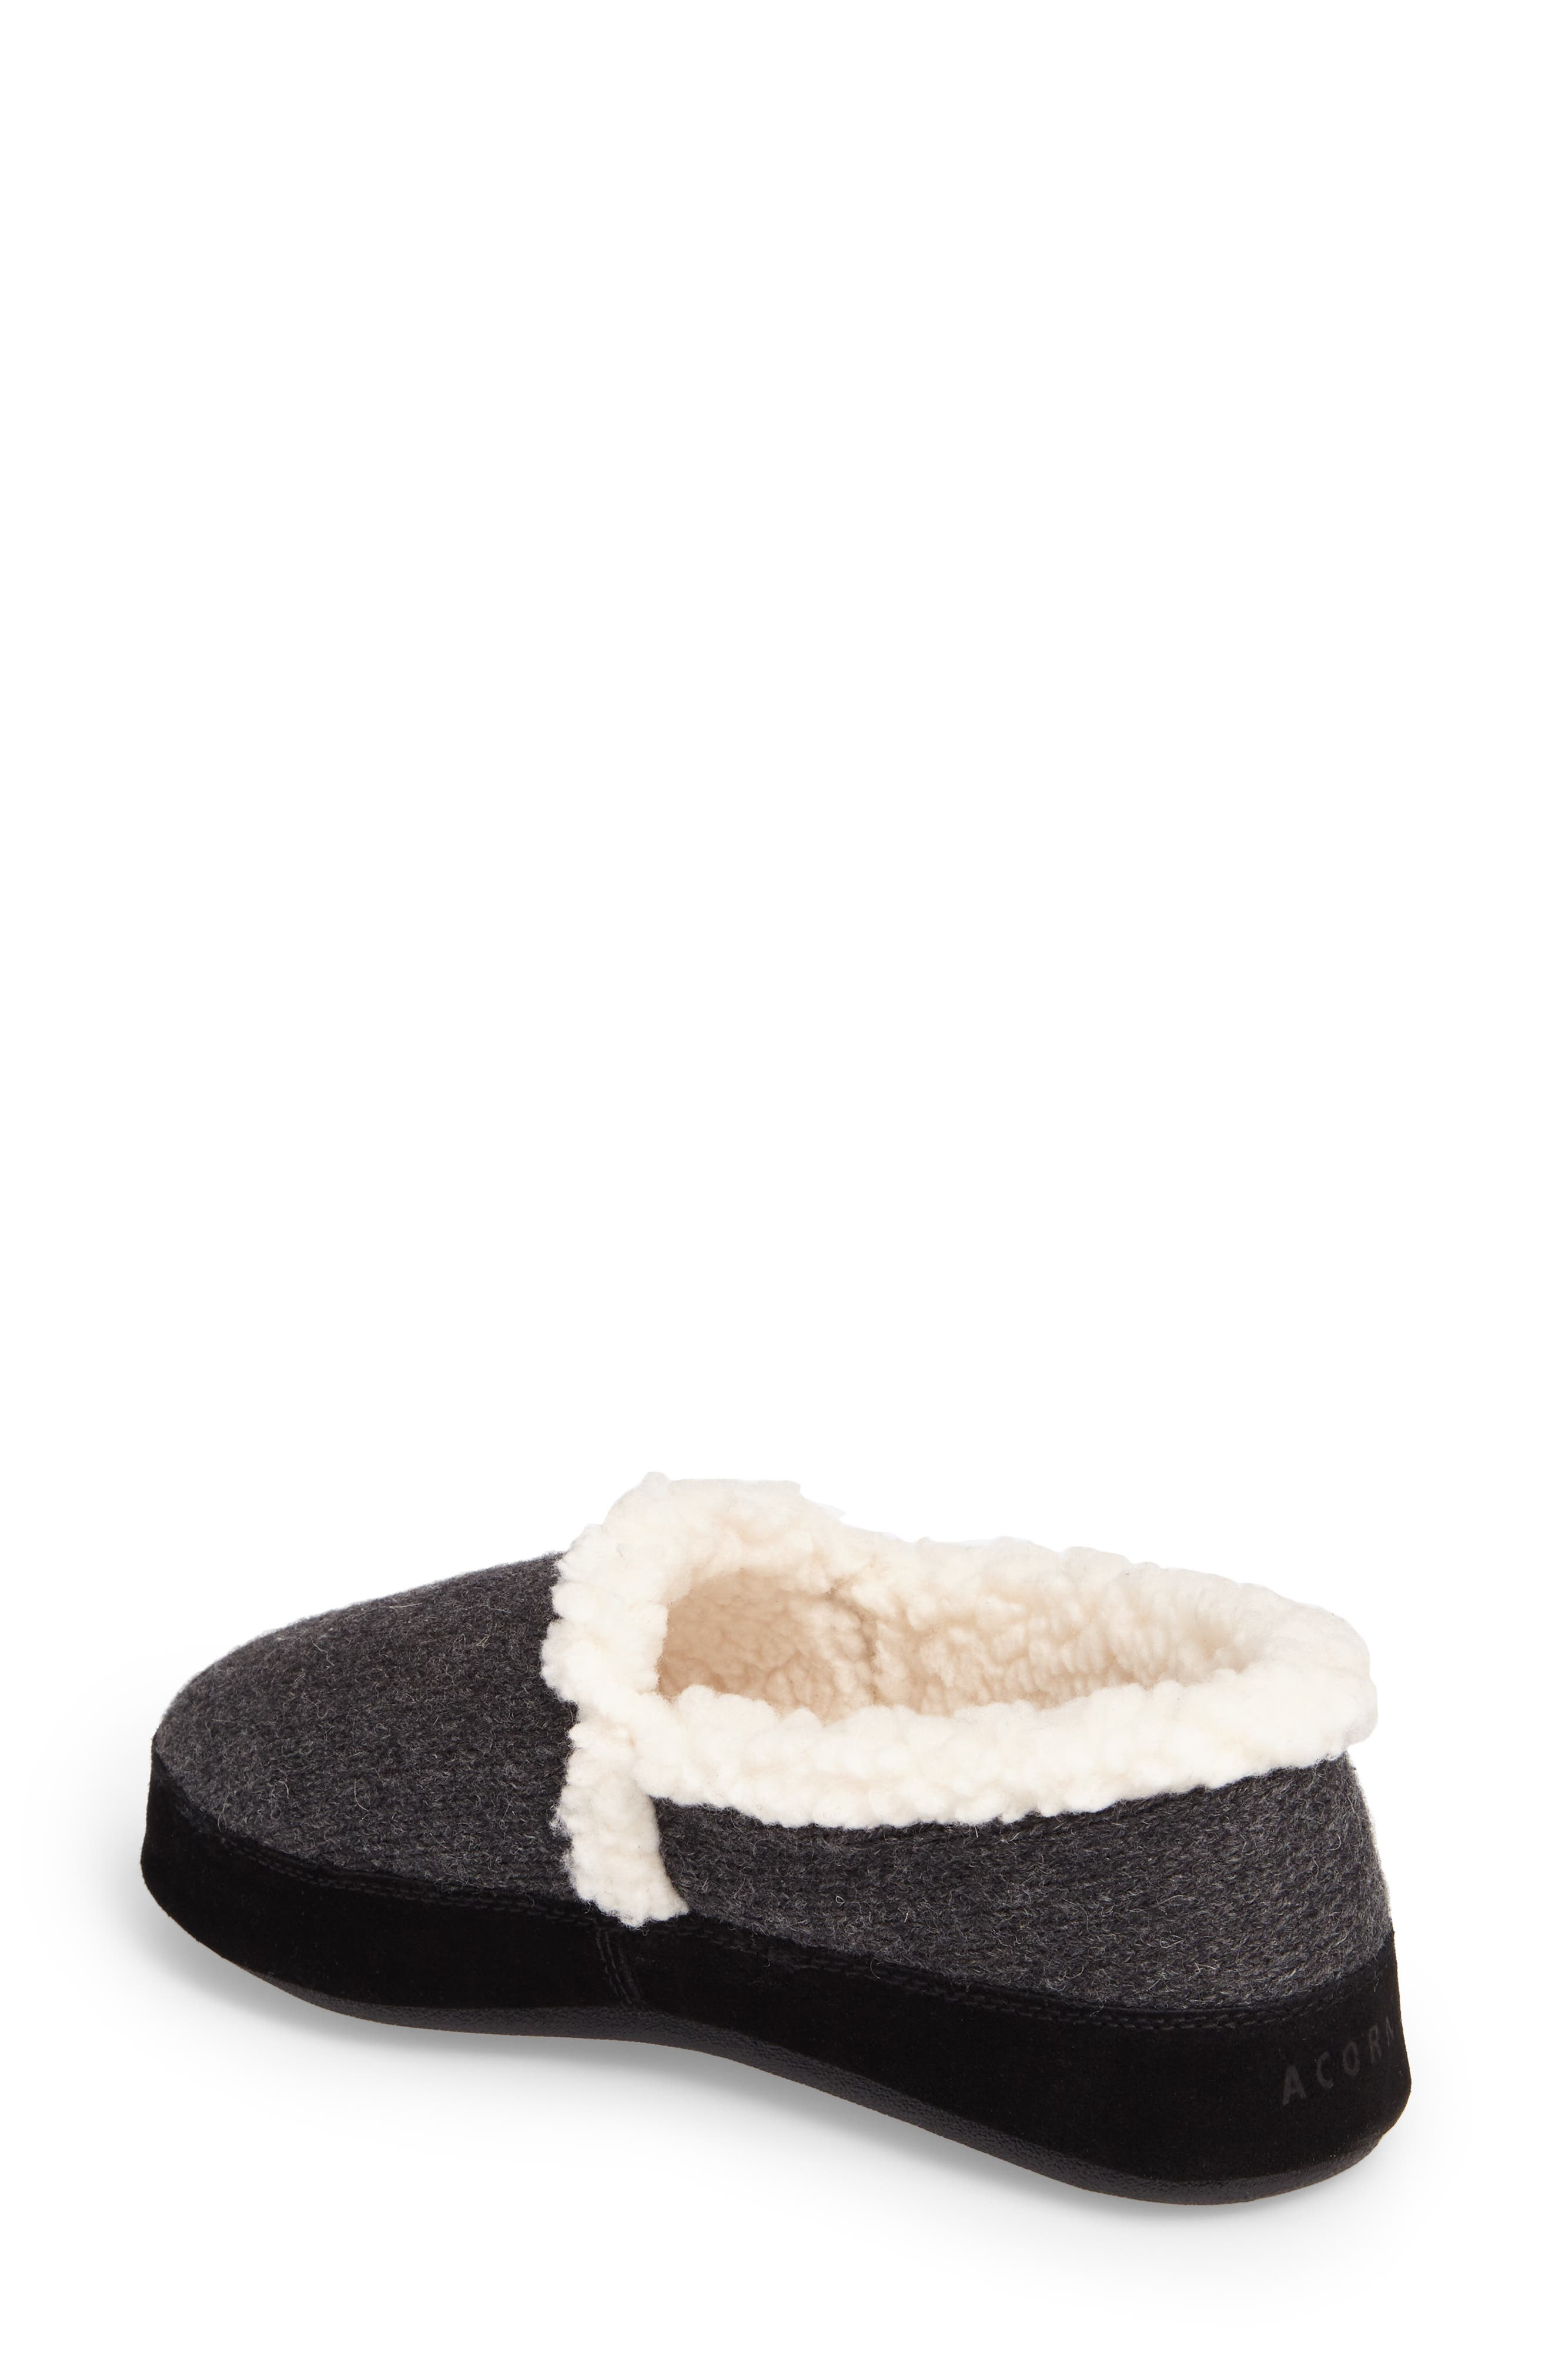 Alternate Image 2  - Acorn Moc Ragg Slipper (Women)